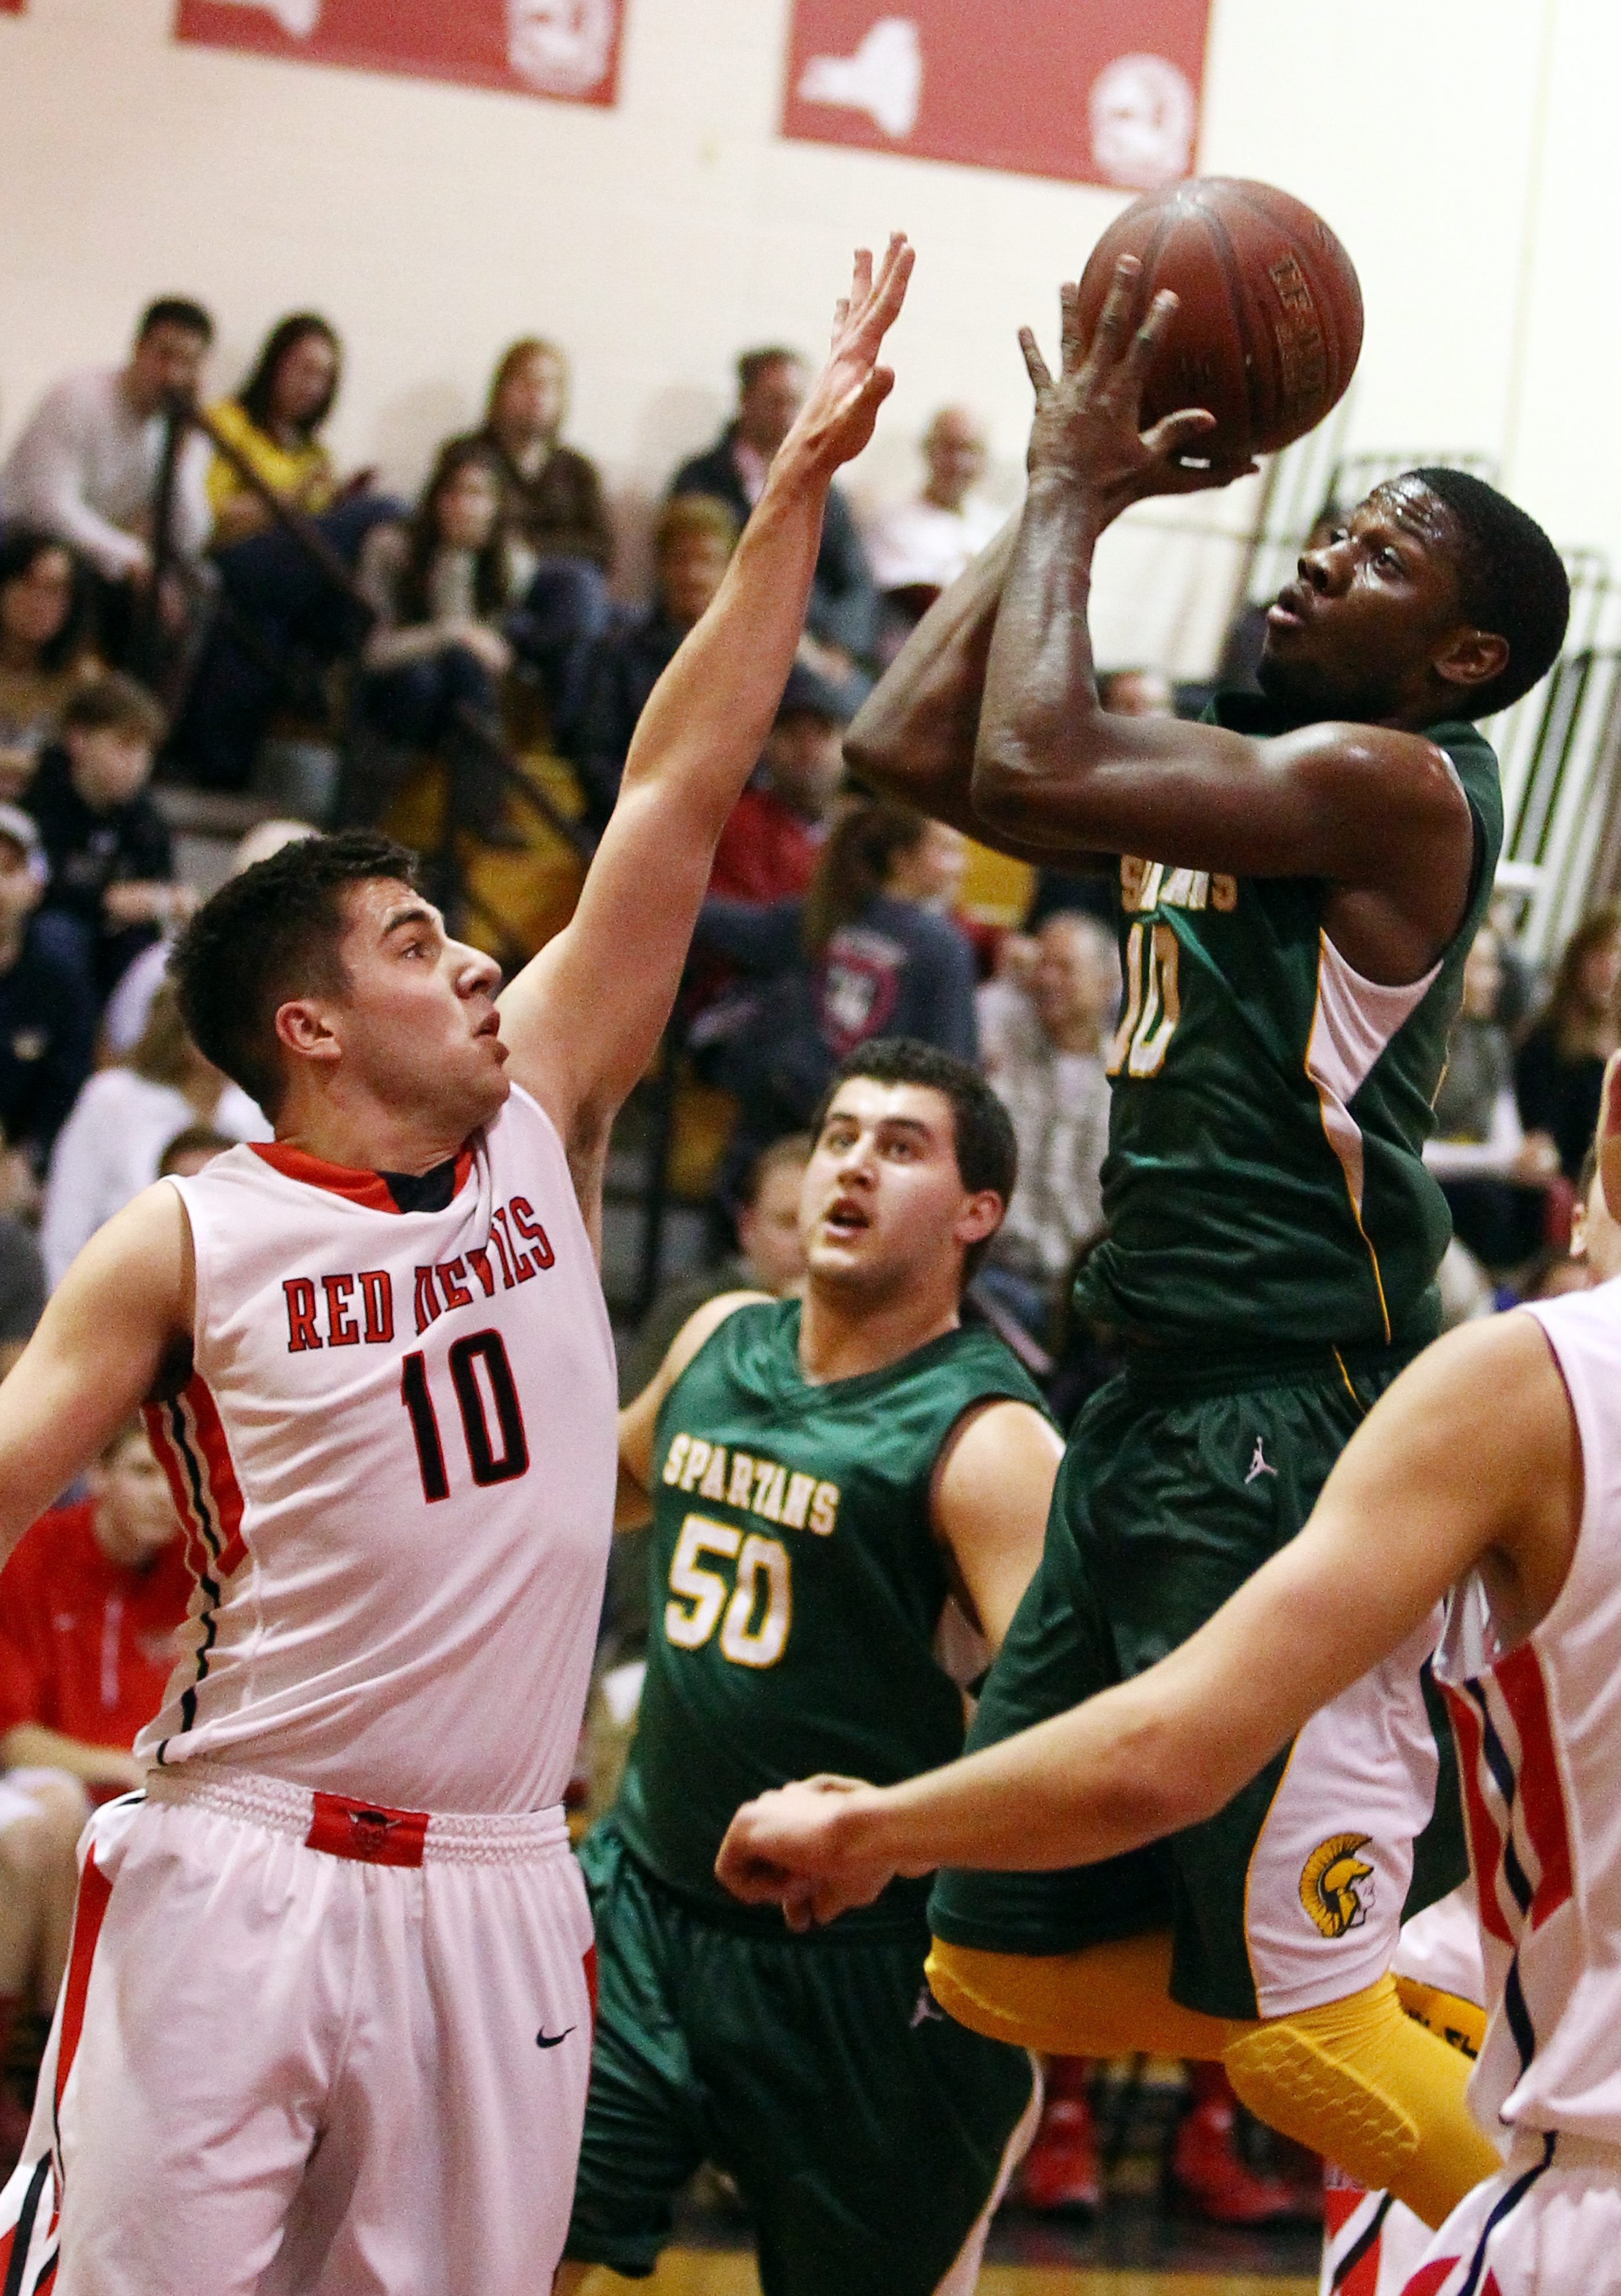 Williamsville North's Sterling Taplin scores two points over Clarence's Elliot Case in the first half.